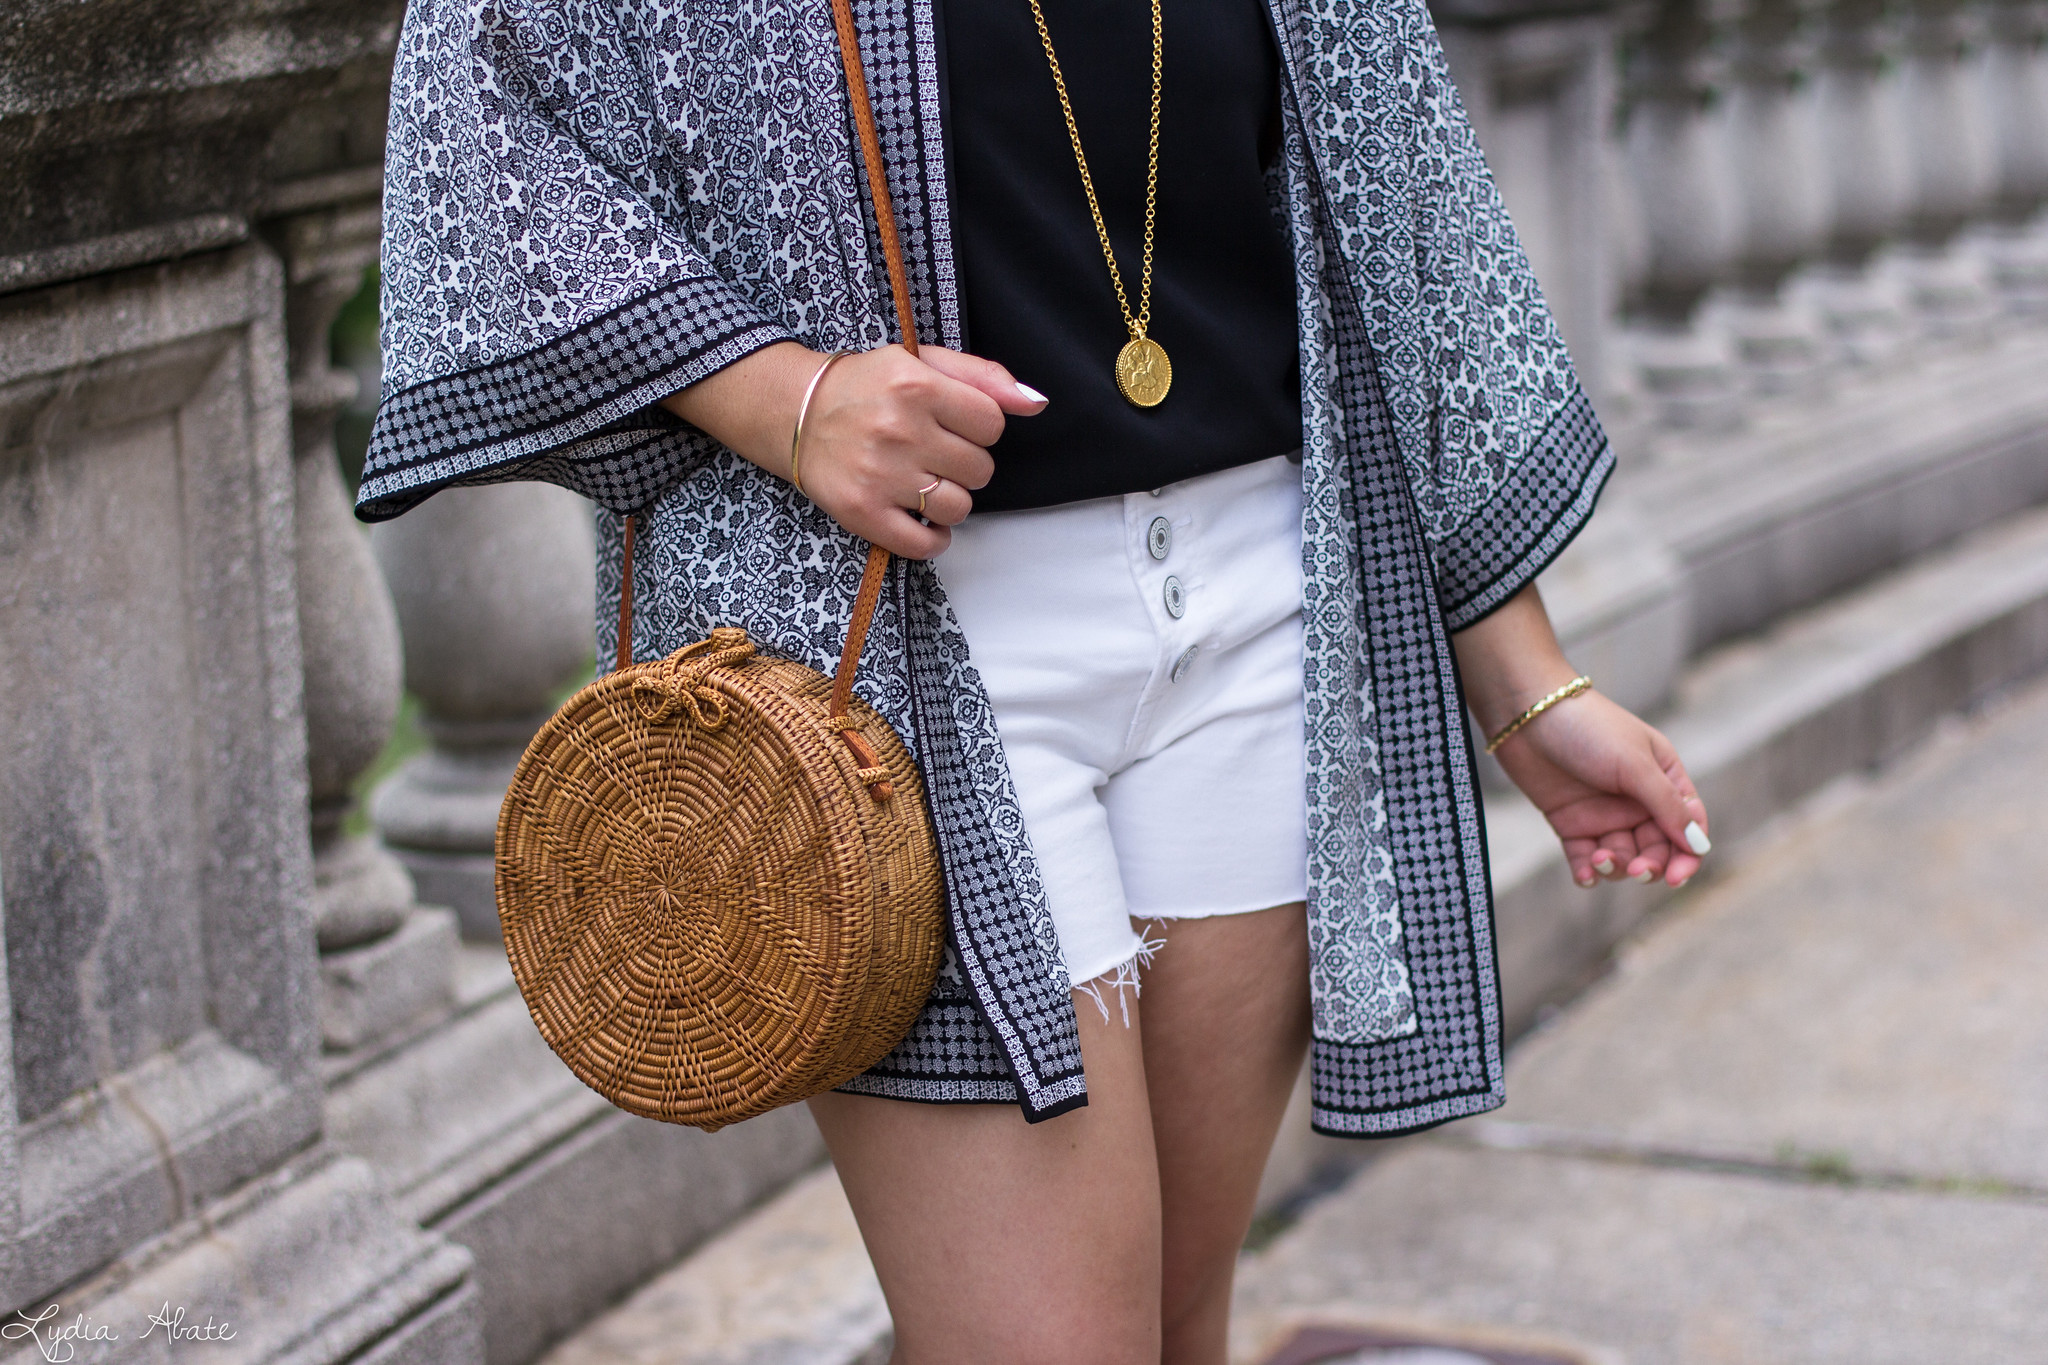 Black and White Kimono, Denim Cut-off Shorts, Round Straw Bag-13.jpg